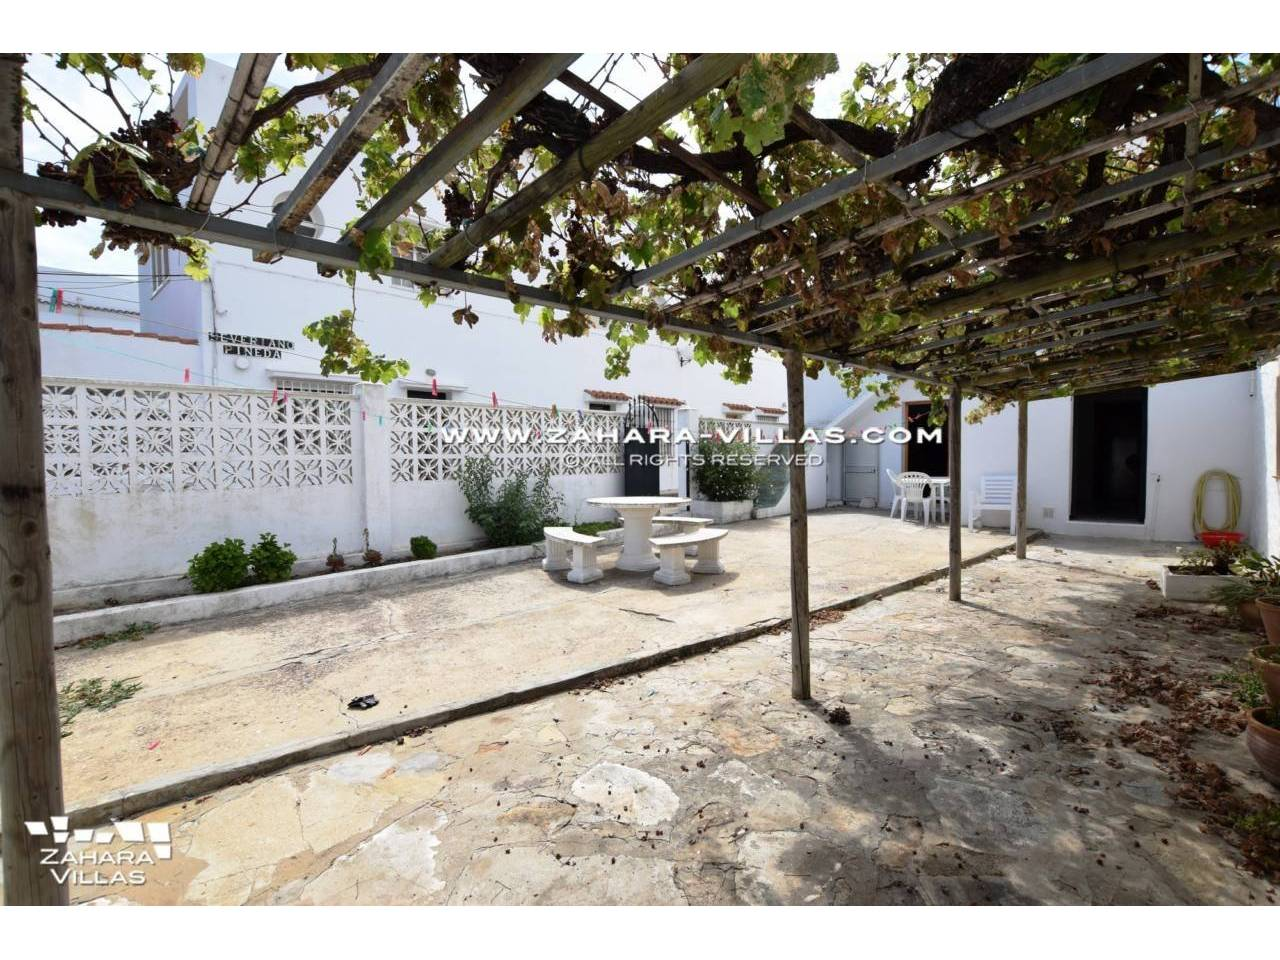 Imagen 2 de House in Avda. Del Pradillo for sale in the town of Zahara de los Atunes